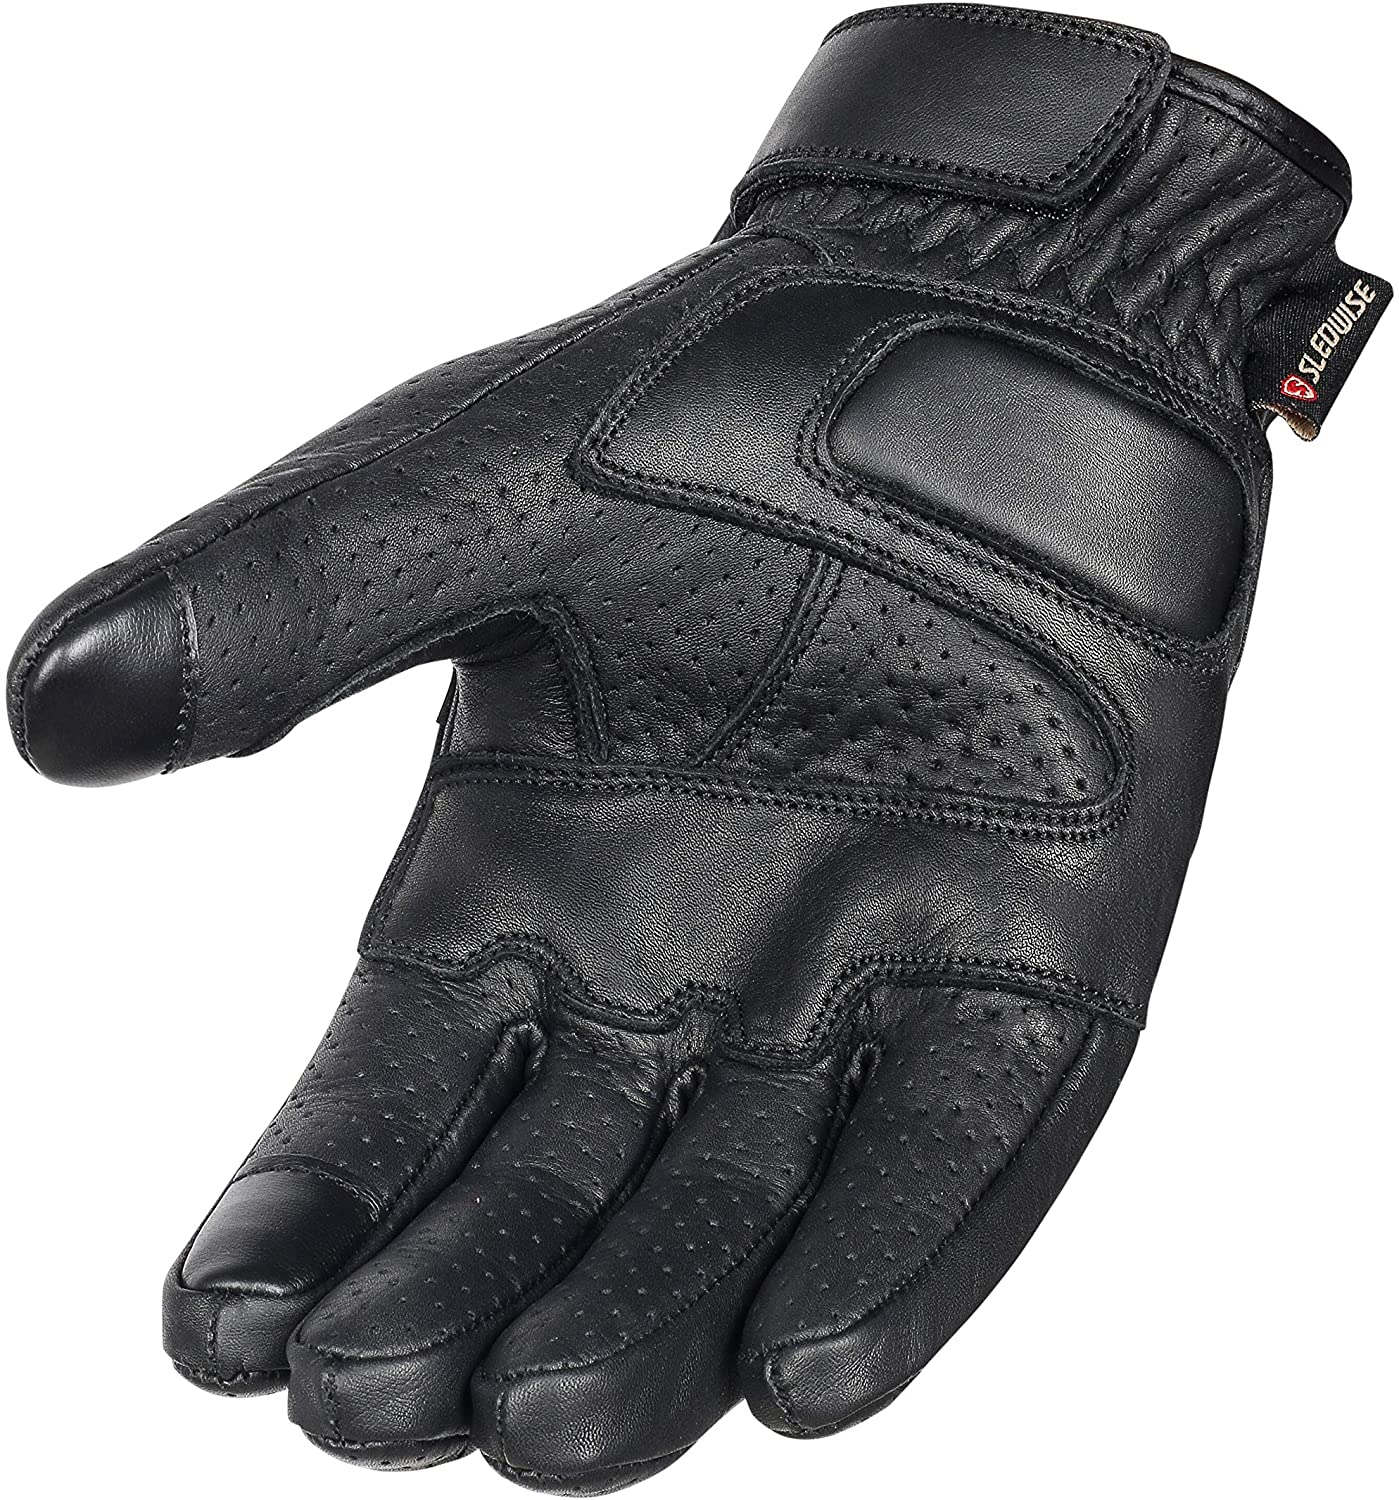 Premium Cowhide Leather Motorcycle Gloves (Black) Mobile Touchscreen Full Finger Gloves for Cycling Motorbike ATV Bike Camping Climbing Hiking Work Outdoor Sports, Perforated Men Gloves (Black, S)